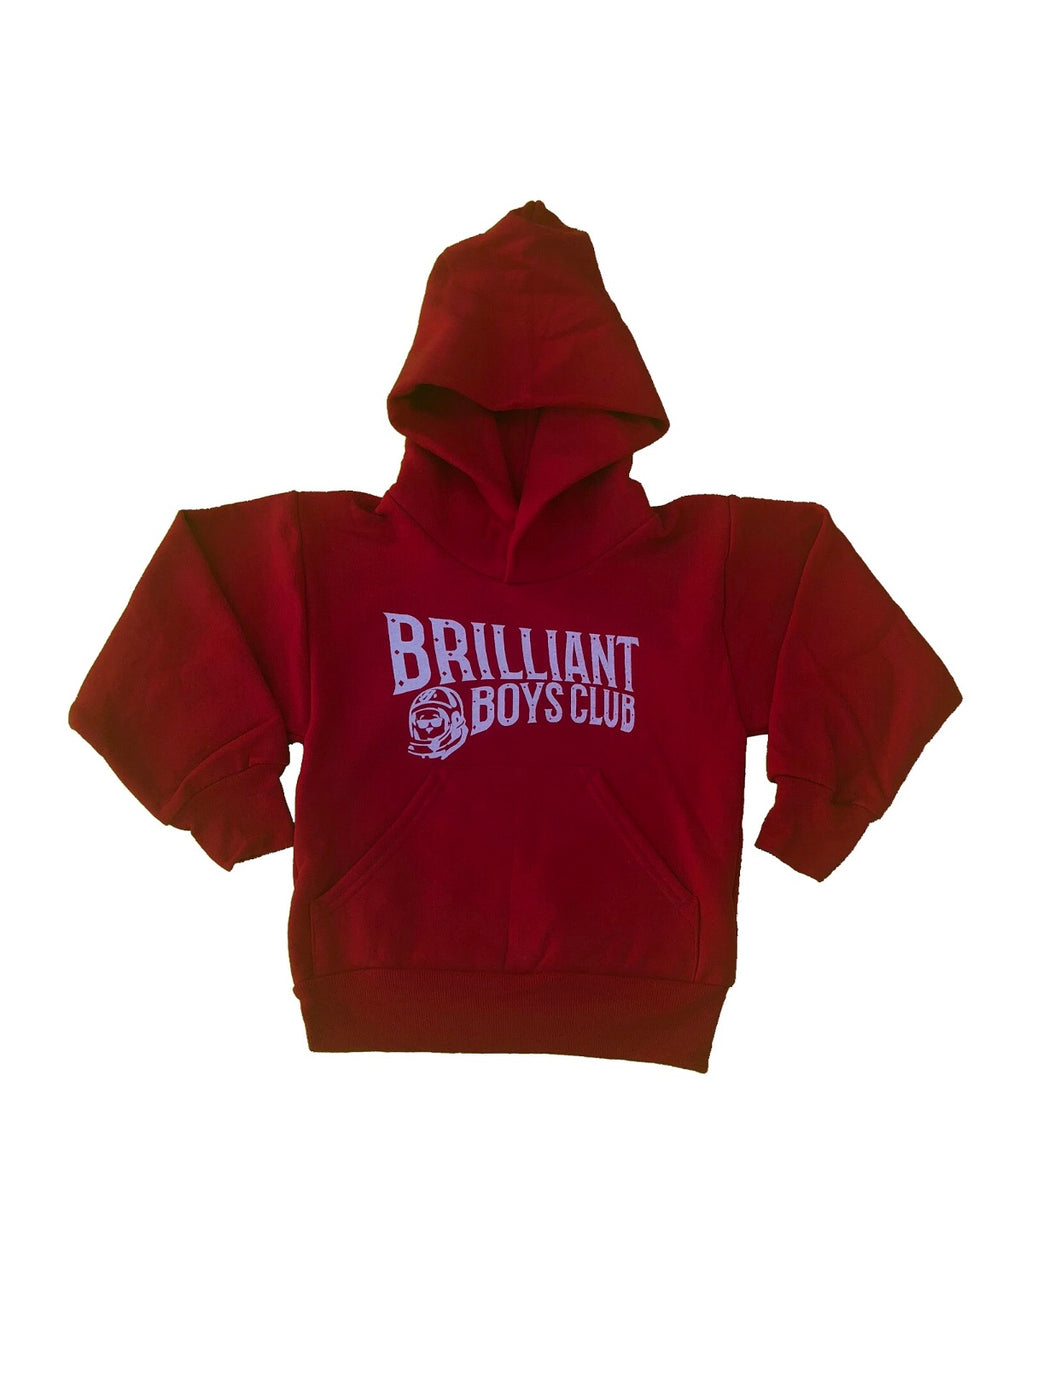 Brilliant Boys Club Hoodie (Red)